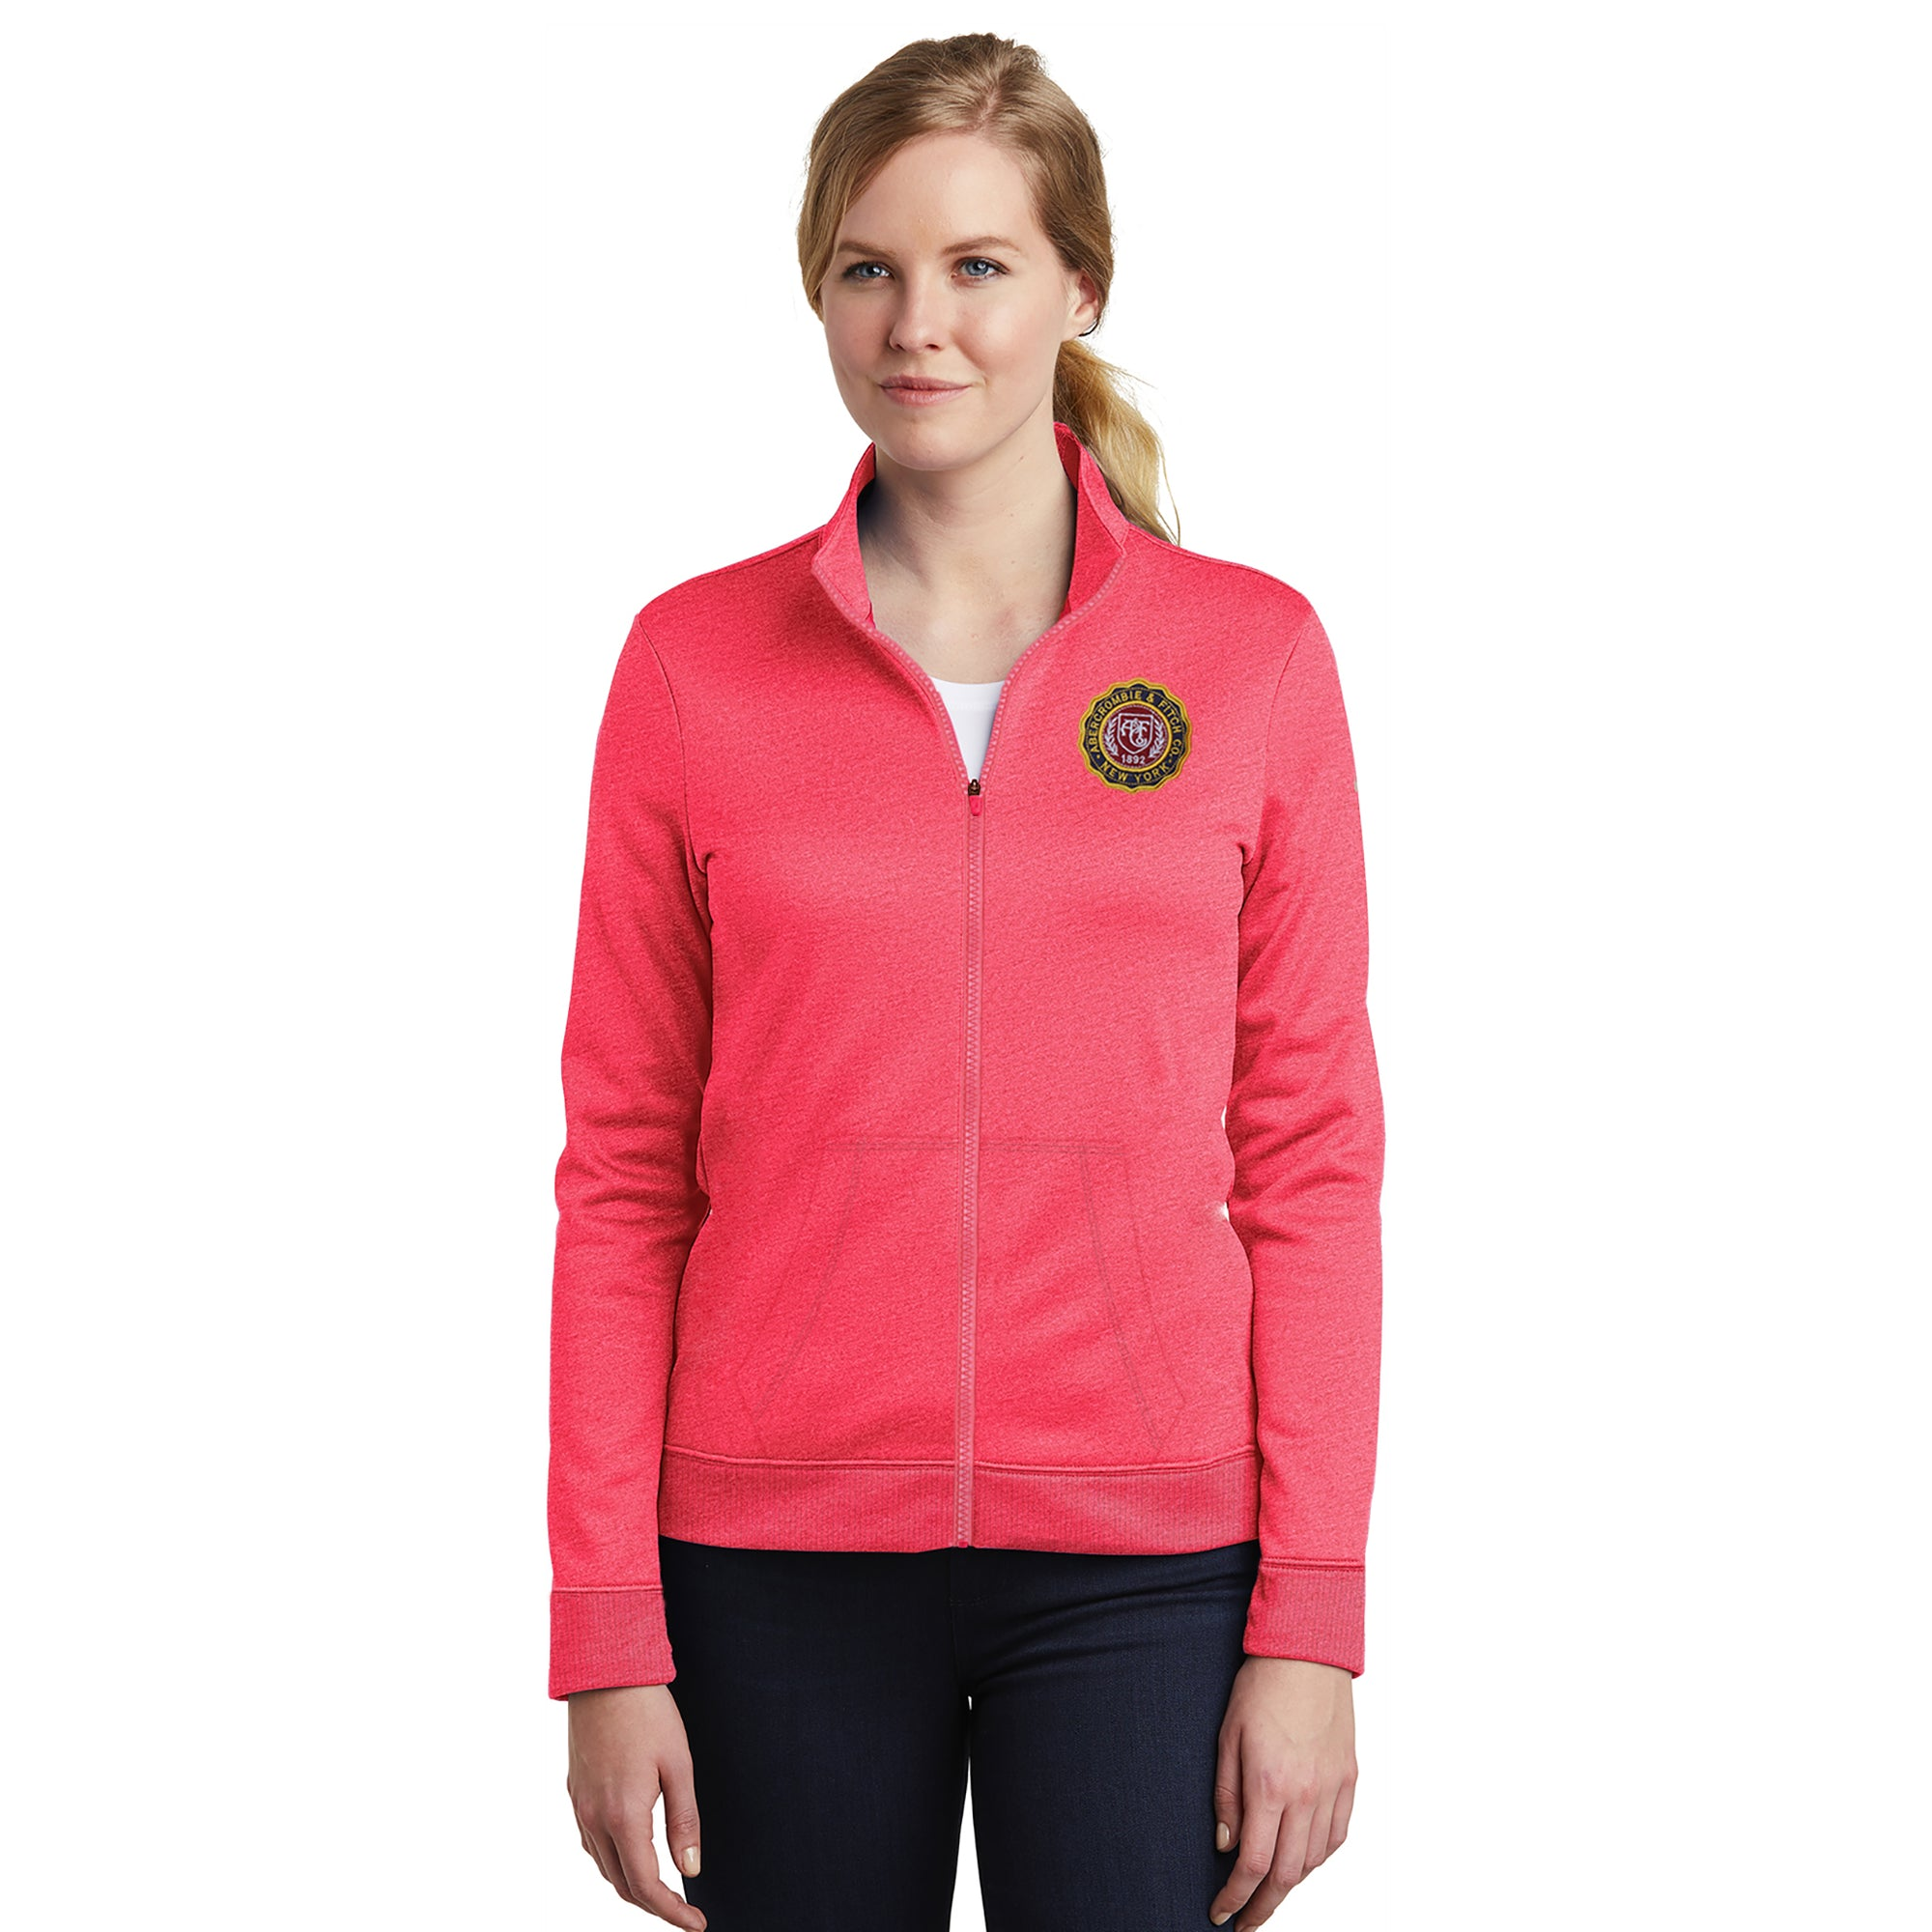 A&F Fleece Zipper Mock Neck Navy & Maroon Embroidery For Ladies-Pink Melange-BE7518